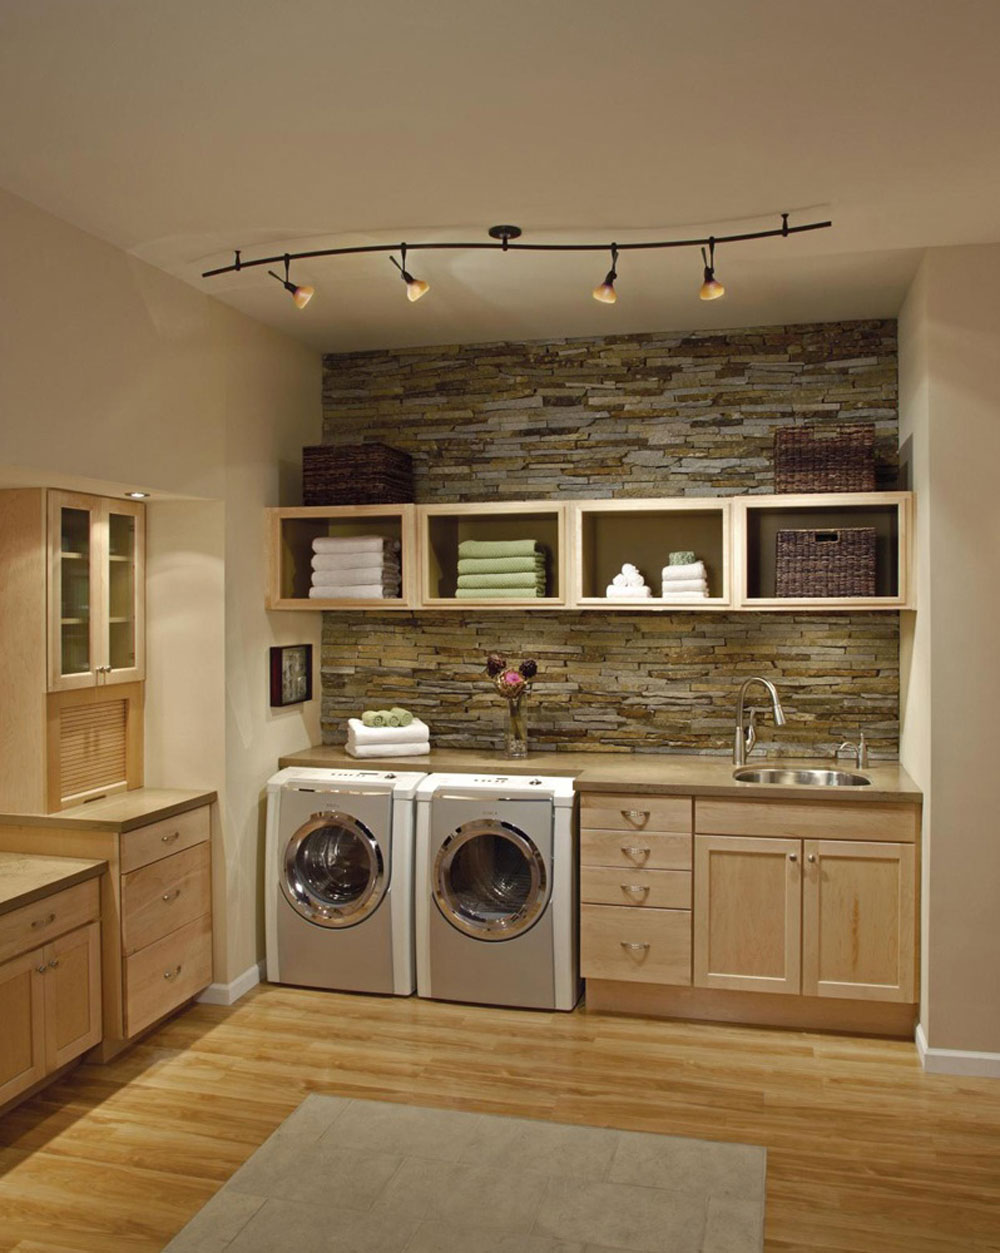 Laundry Room Home: Laundry Room Ideas For A Clean House